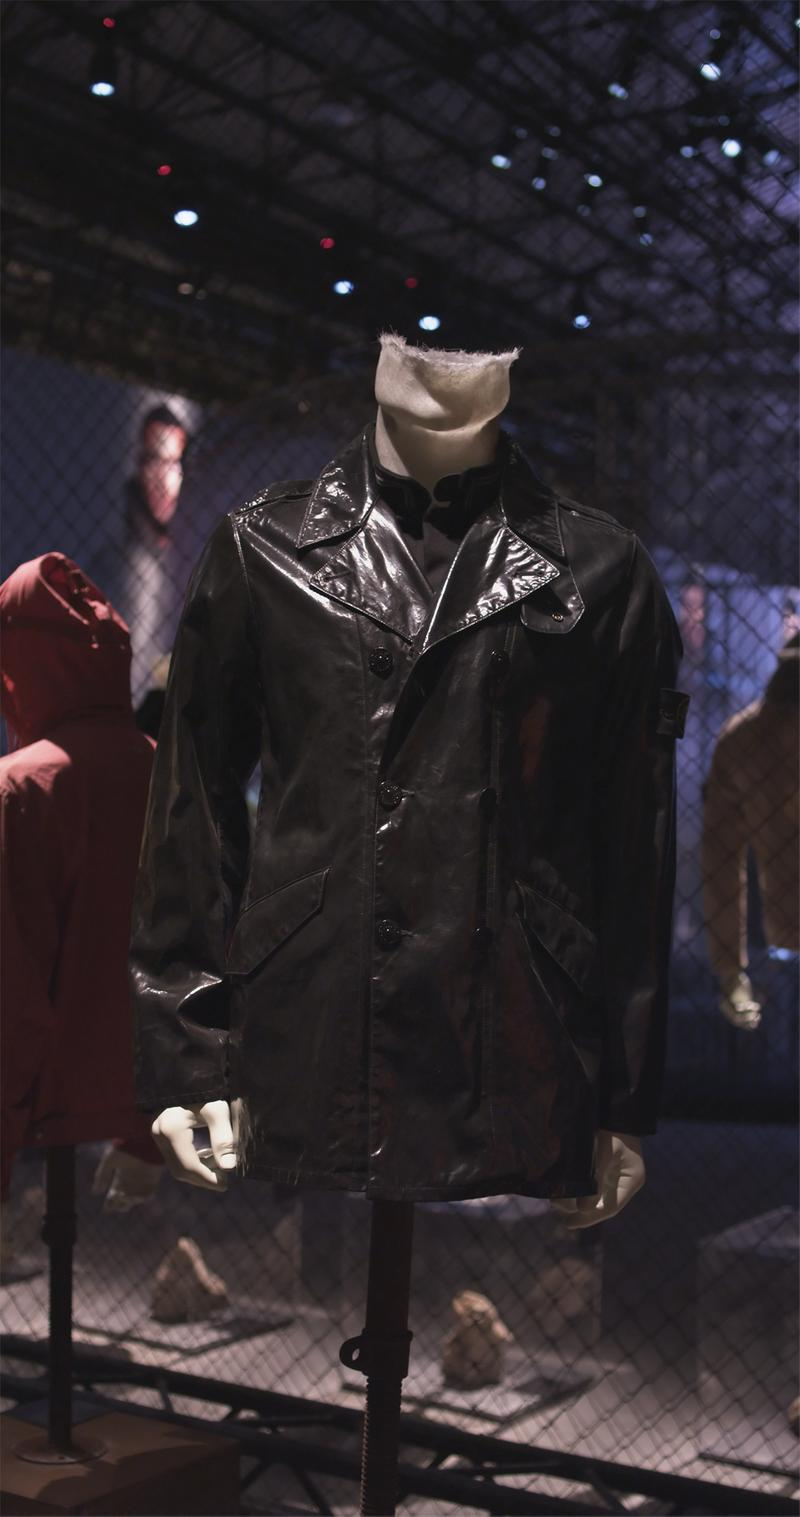 High shine black buttoned jacket with wide collar displayed on mannequin bust against chain link fence